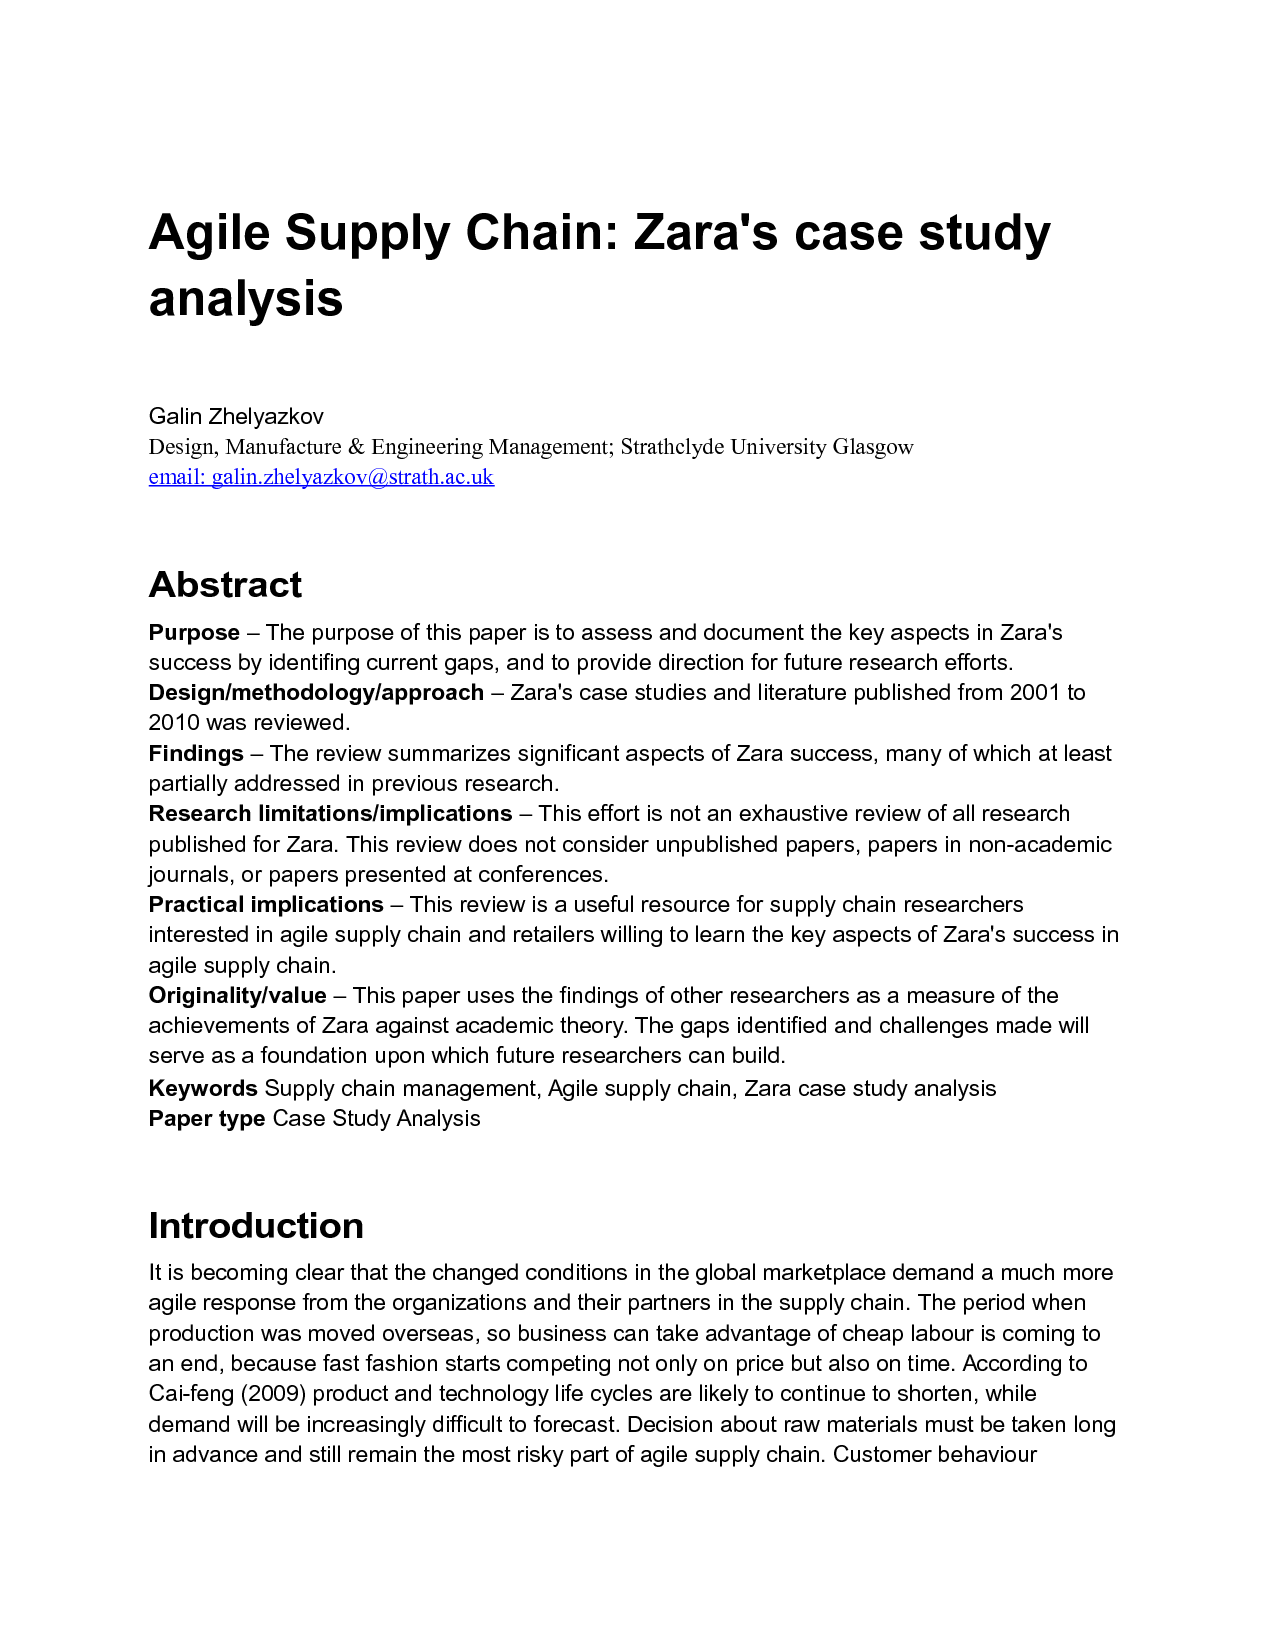 supply chain management case study analysis